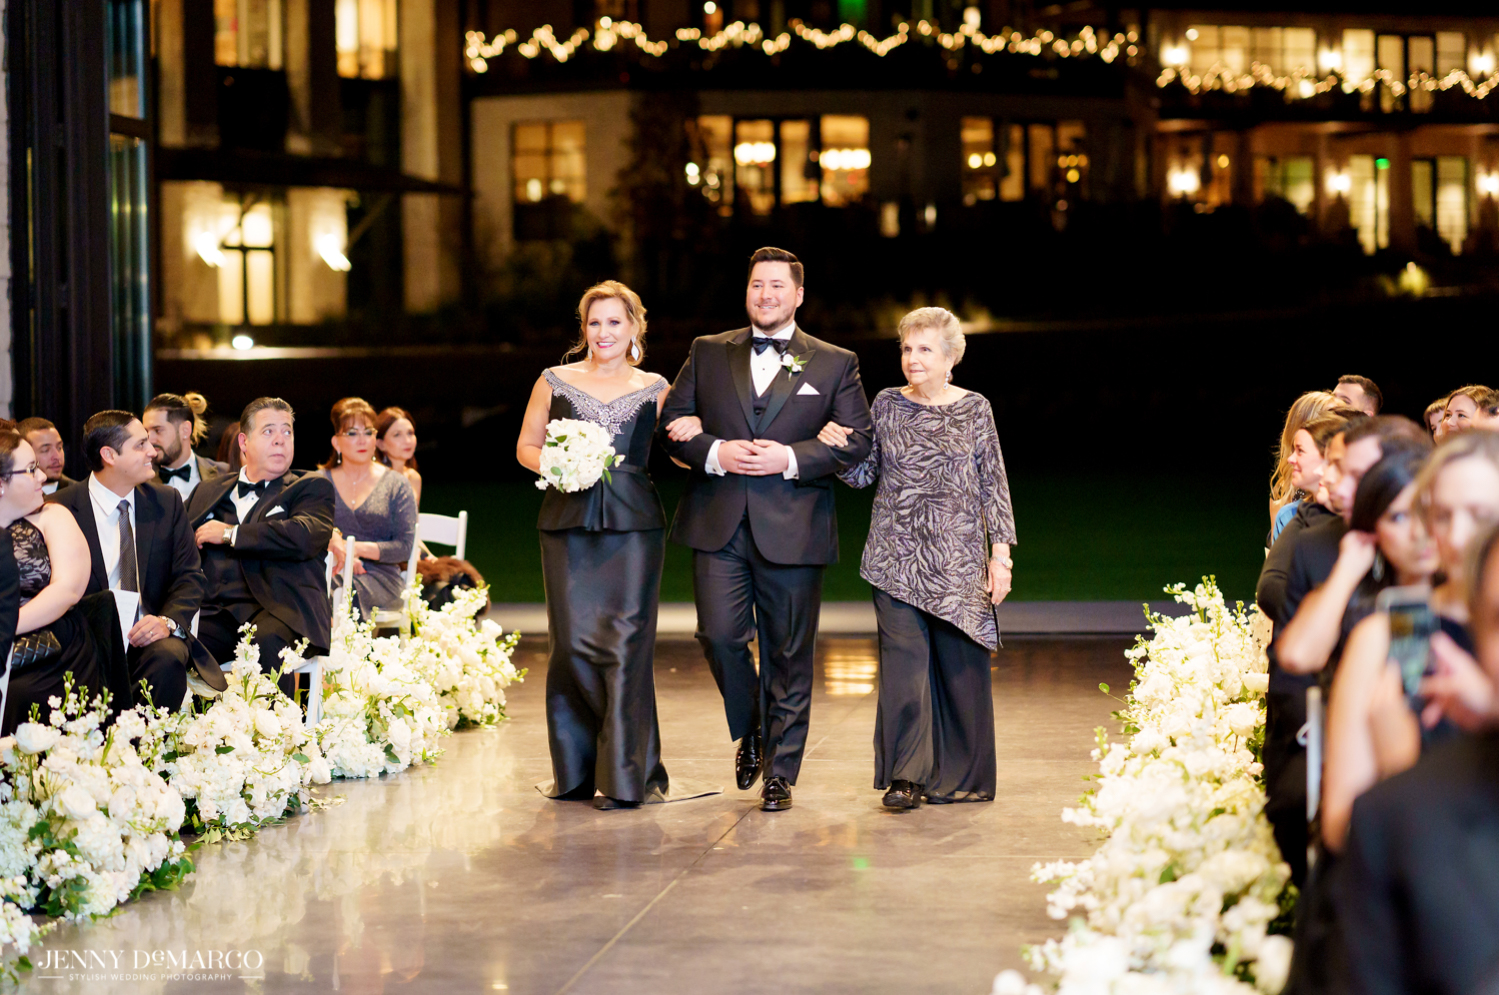 the groom walking his mother and grandmother down the aisle